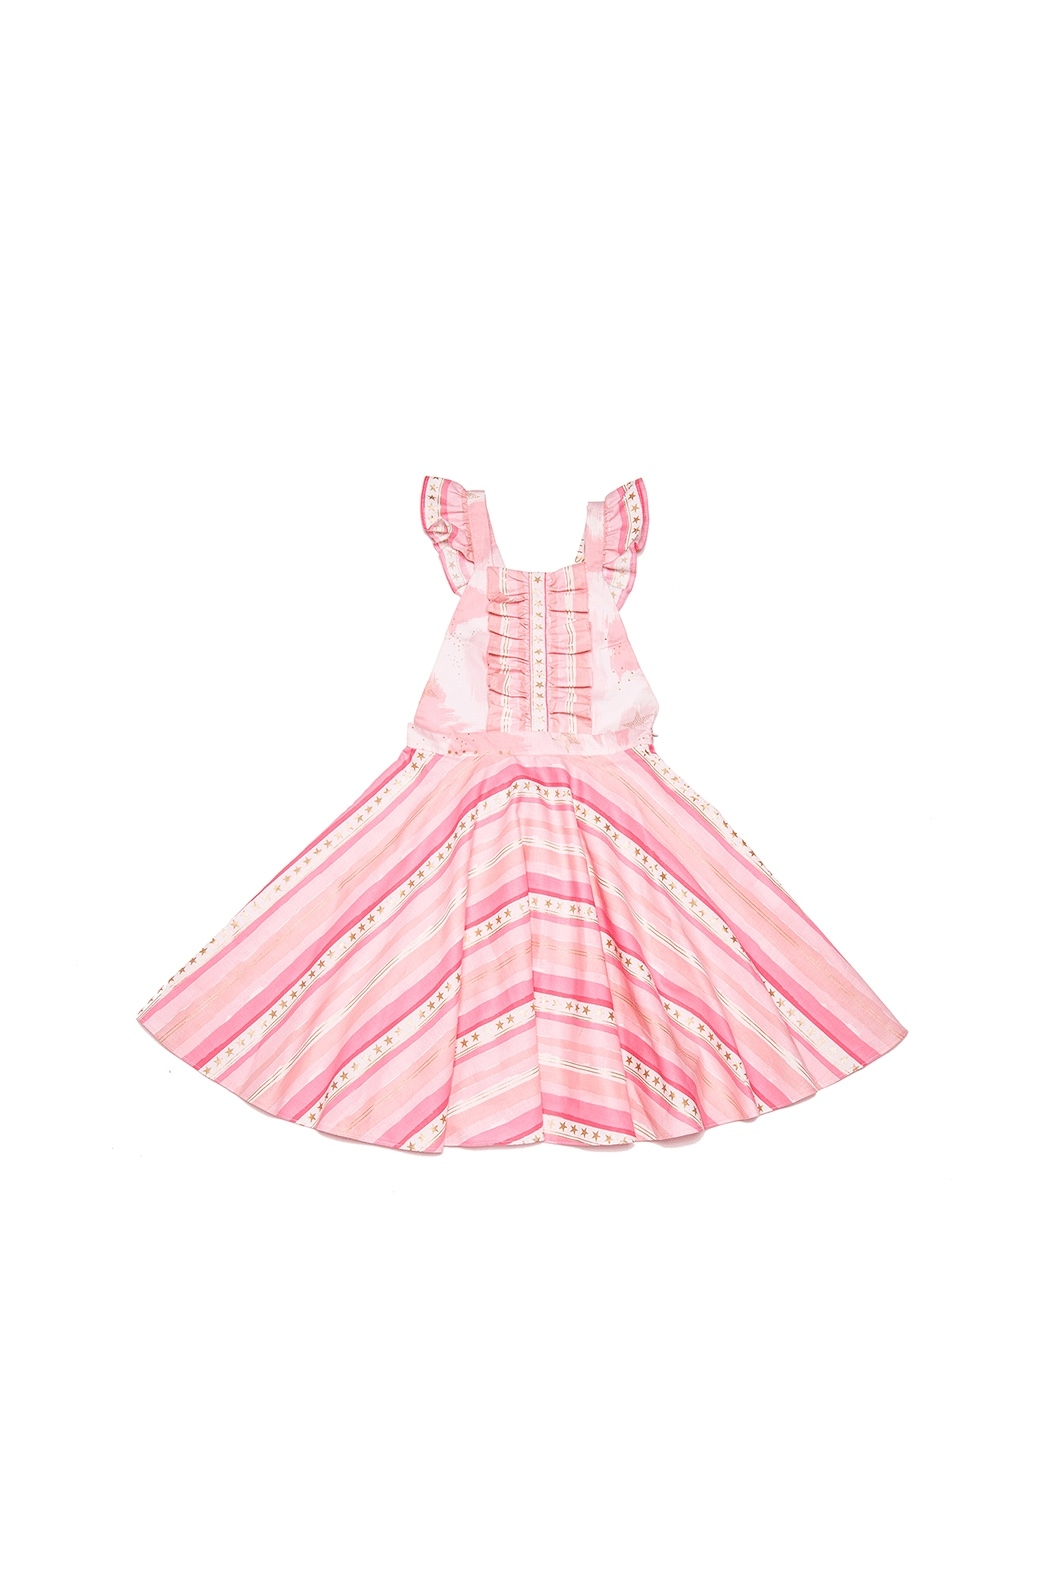 Mandy by Gema Valentina Dress Stripes and Stars Pink - Side Cropped Image